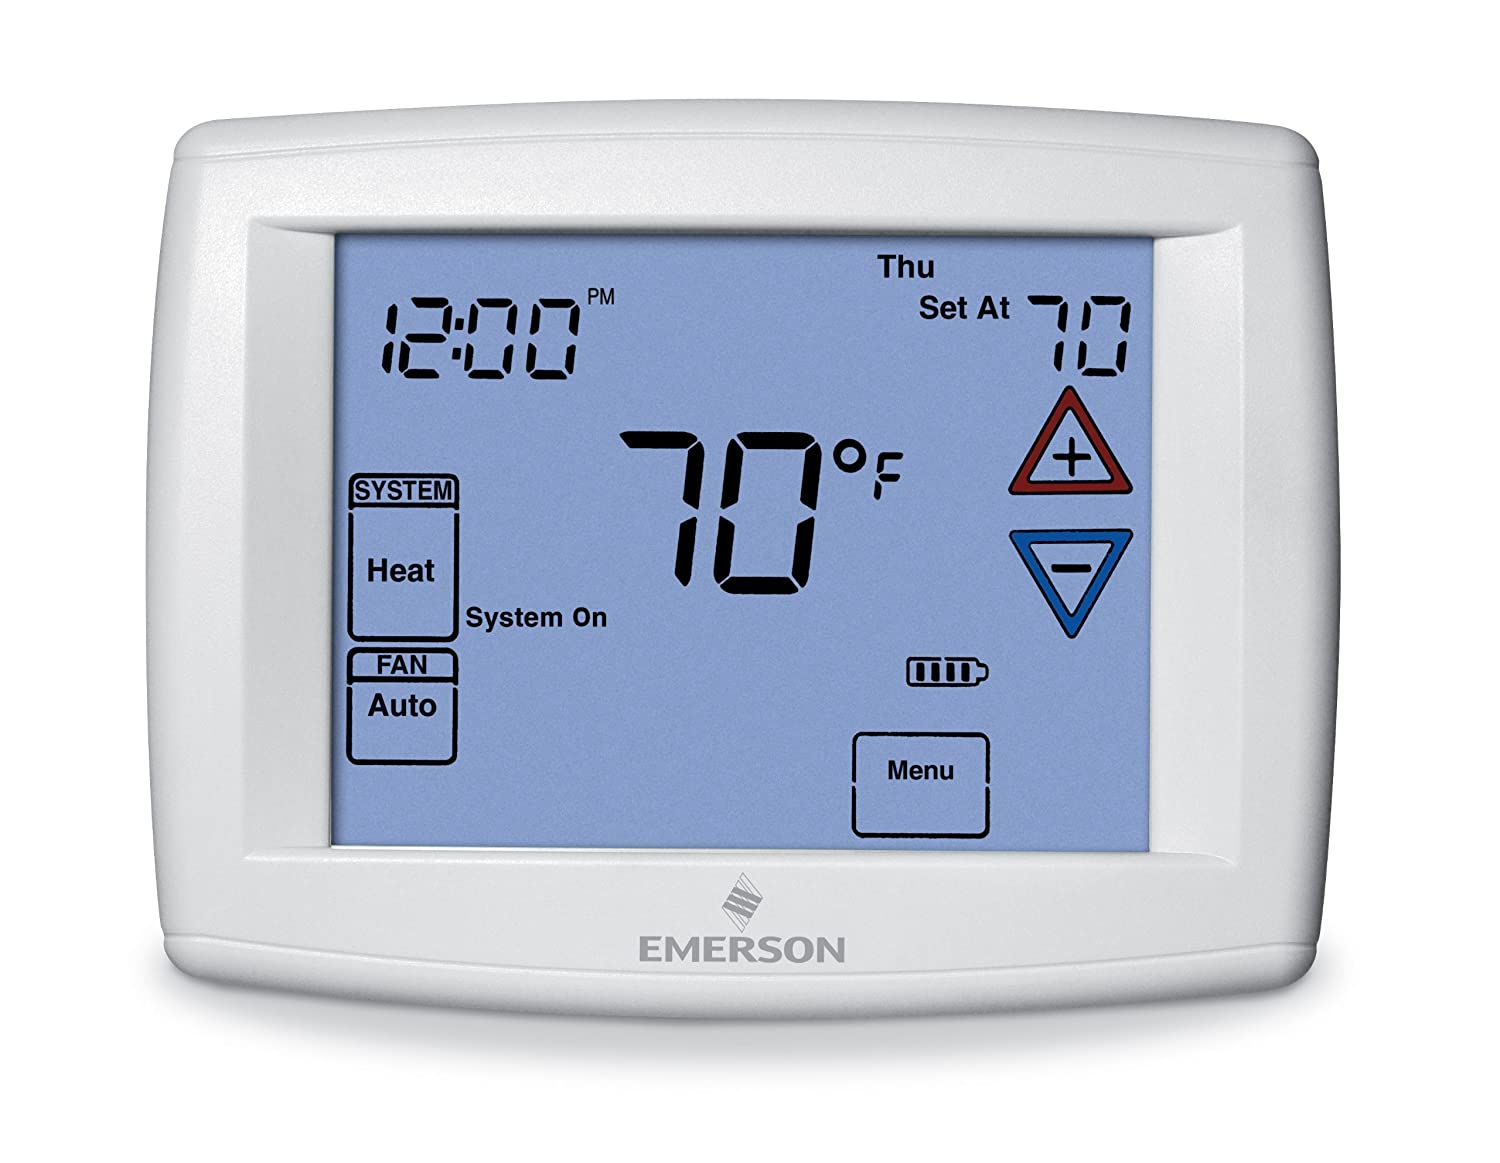 81wGARaMzOL._SL1500_ emerson 1f95 1277 touchscreen 7 day programmable thermostat white rodgers 1f95-1277 wiring diagram at sewacar.co